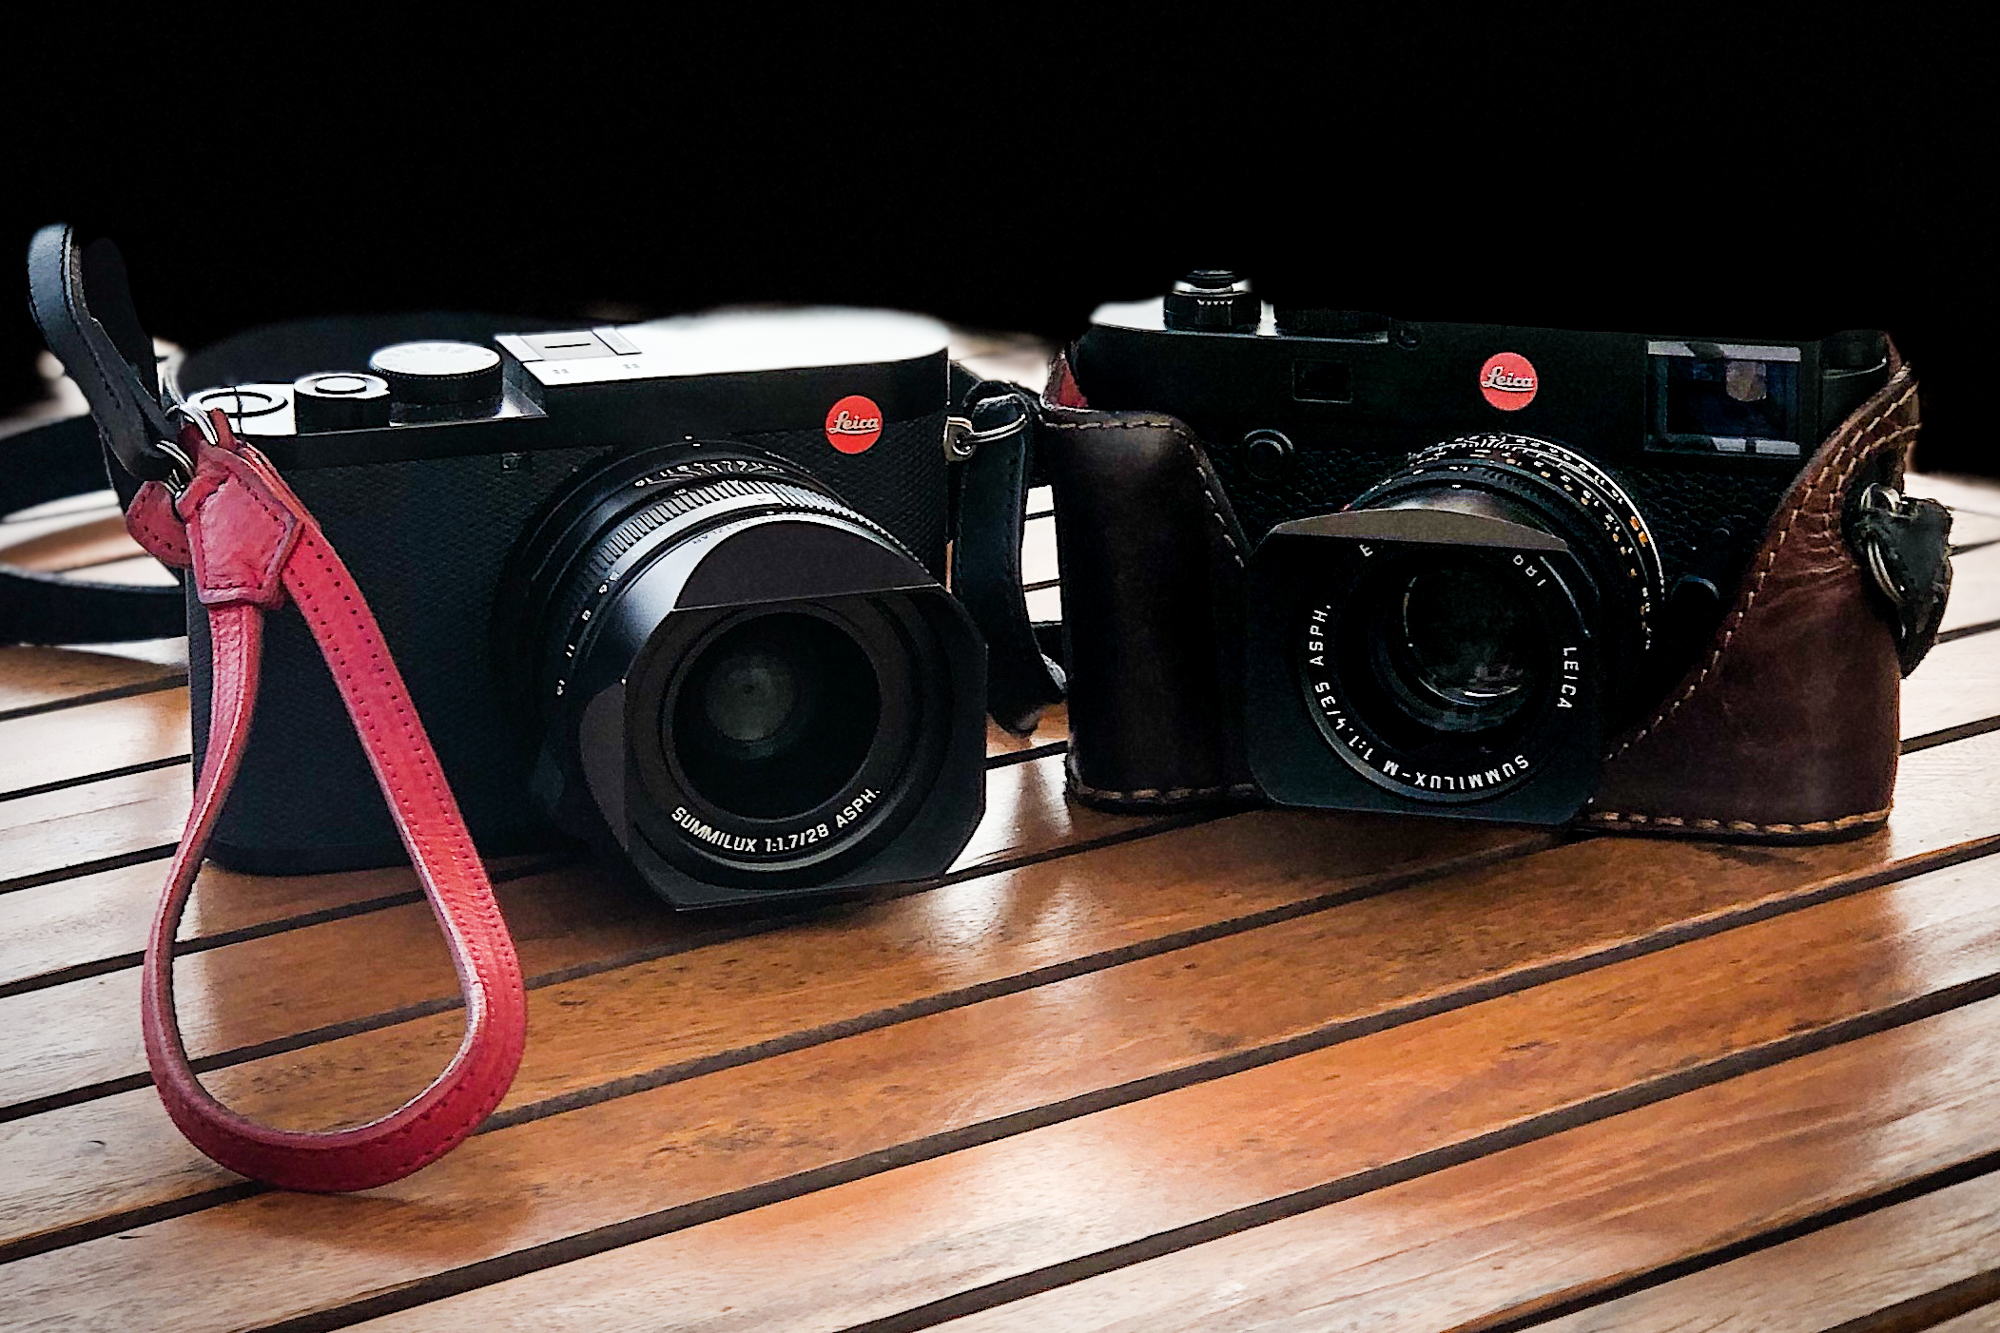 The new Leica Q2 next to my trusted Leica M10.